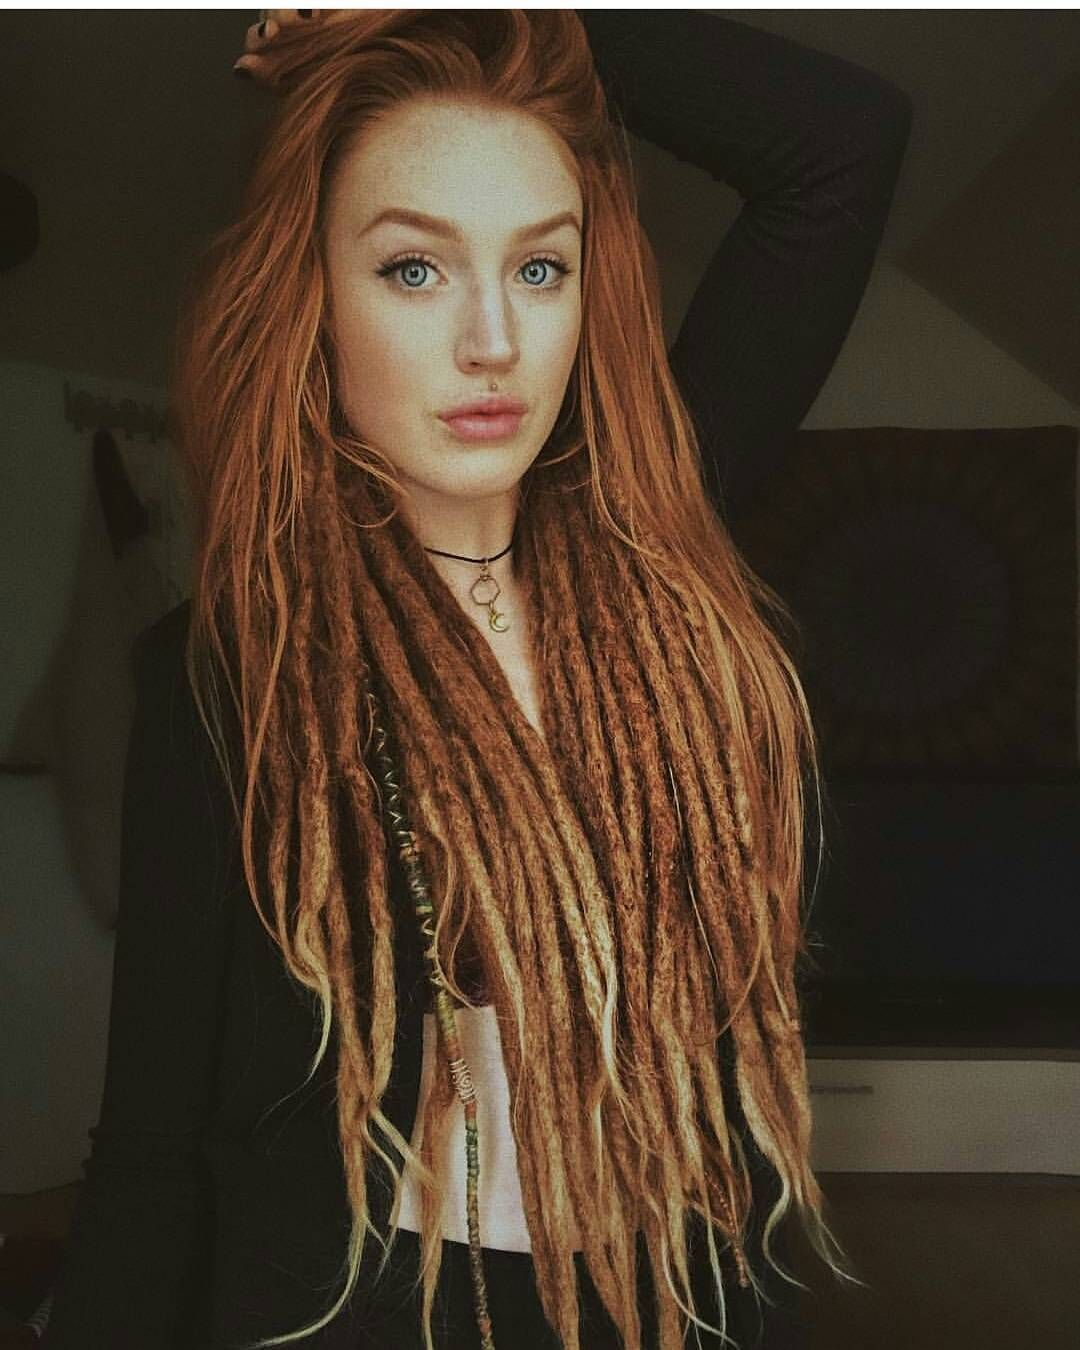 Image Result For White Girls With A Few Dreads Rasta Hair Dread Hairstyles Hair Styles